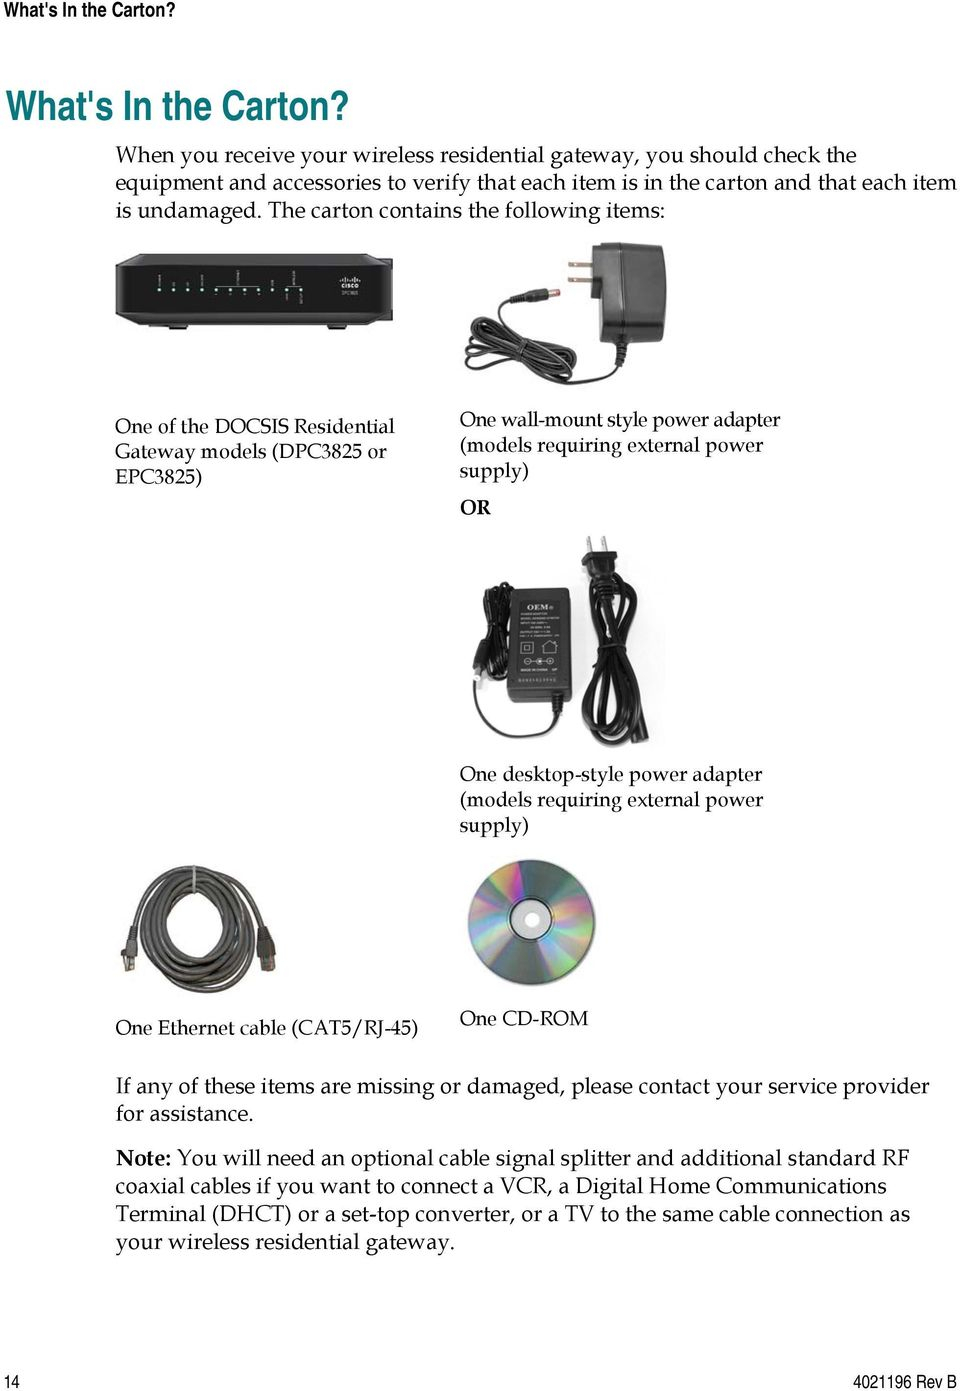 cisco model dpc3825 and epc3825 8x4 docsis 3 0 wireless residential rh docplayer net Cisco DPC3825 Cisco DPC Symbol